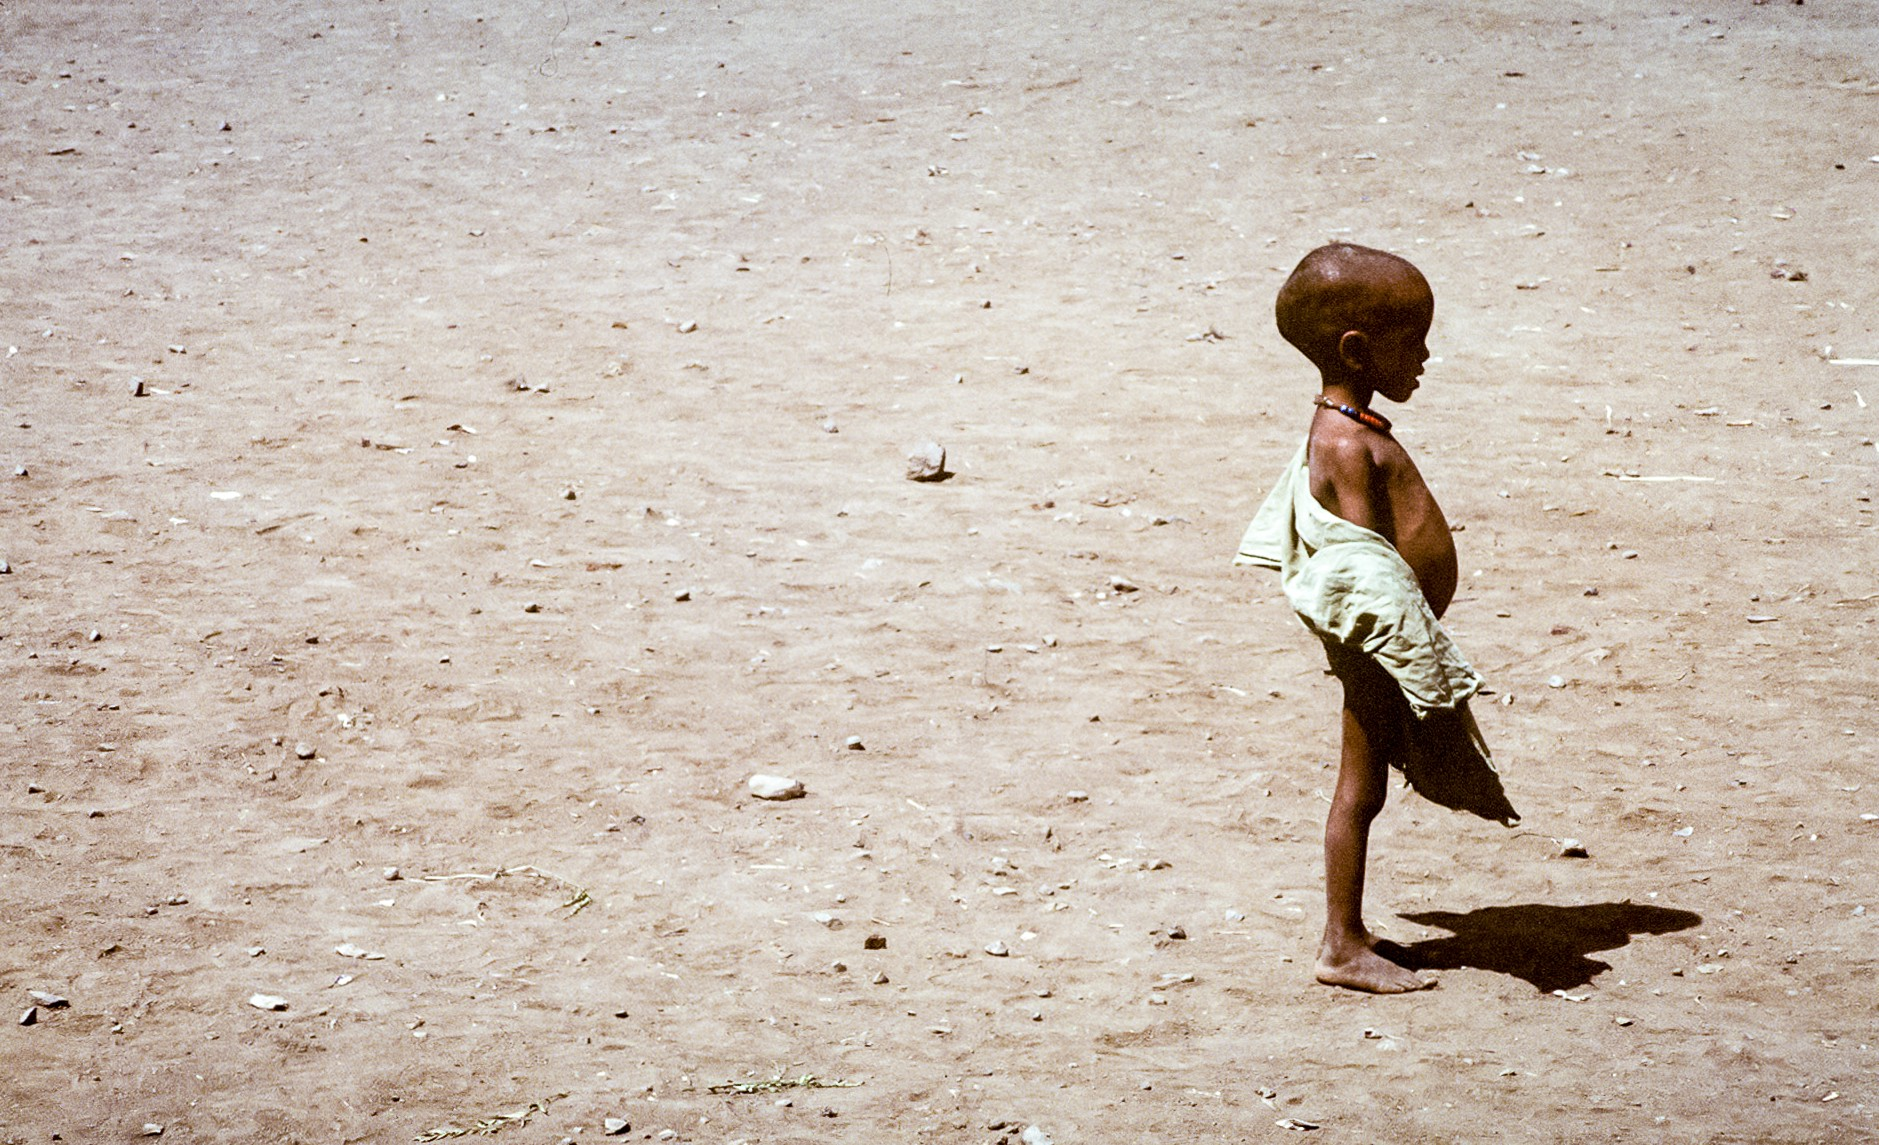 On a background of parched earth, a very thin black child with a distended belly stands in profile, facing to the right.